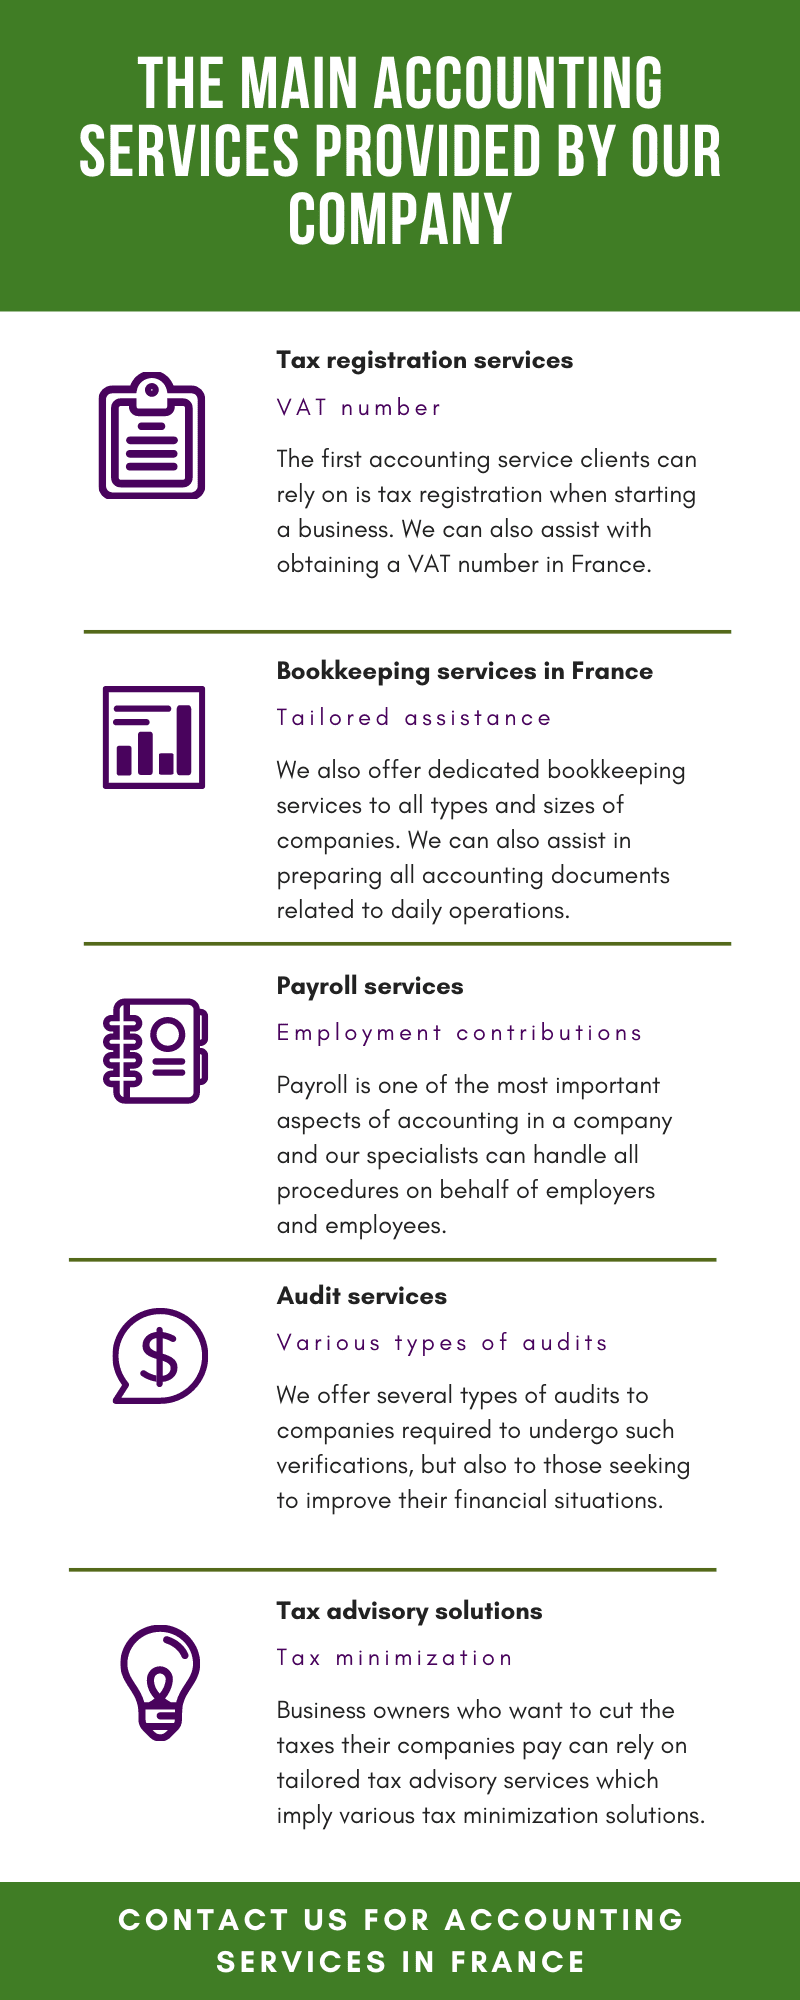 The Main Accounting Services Provided by our Company